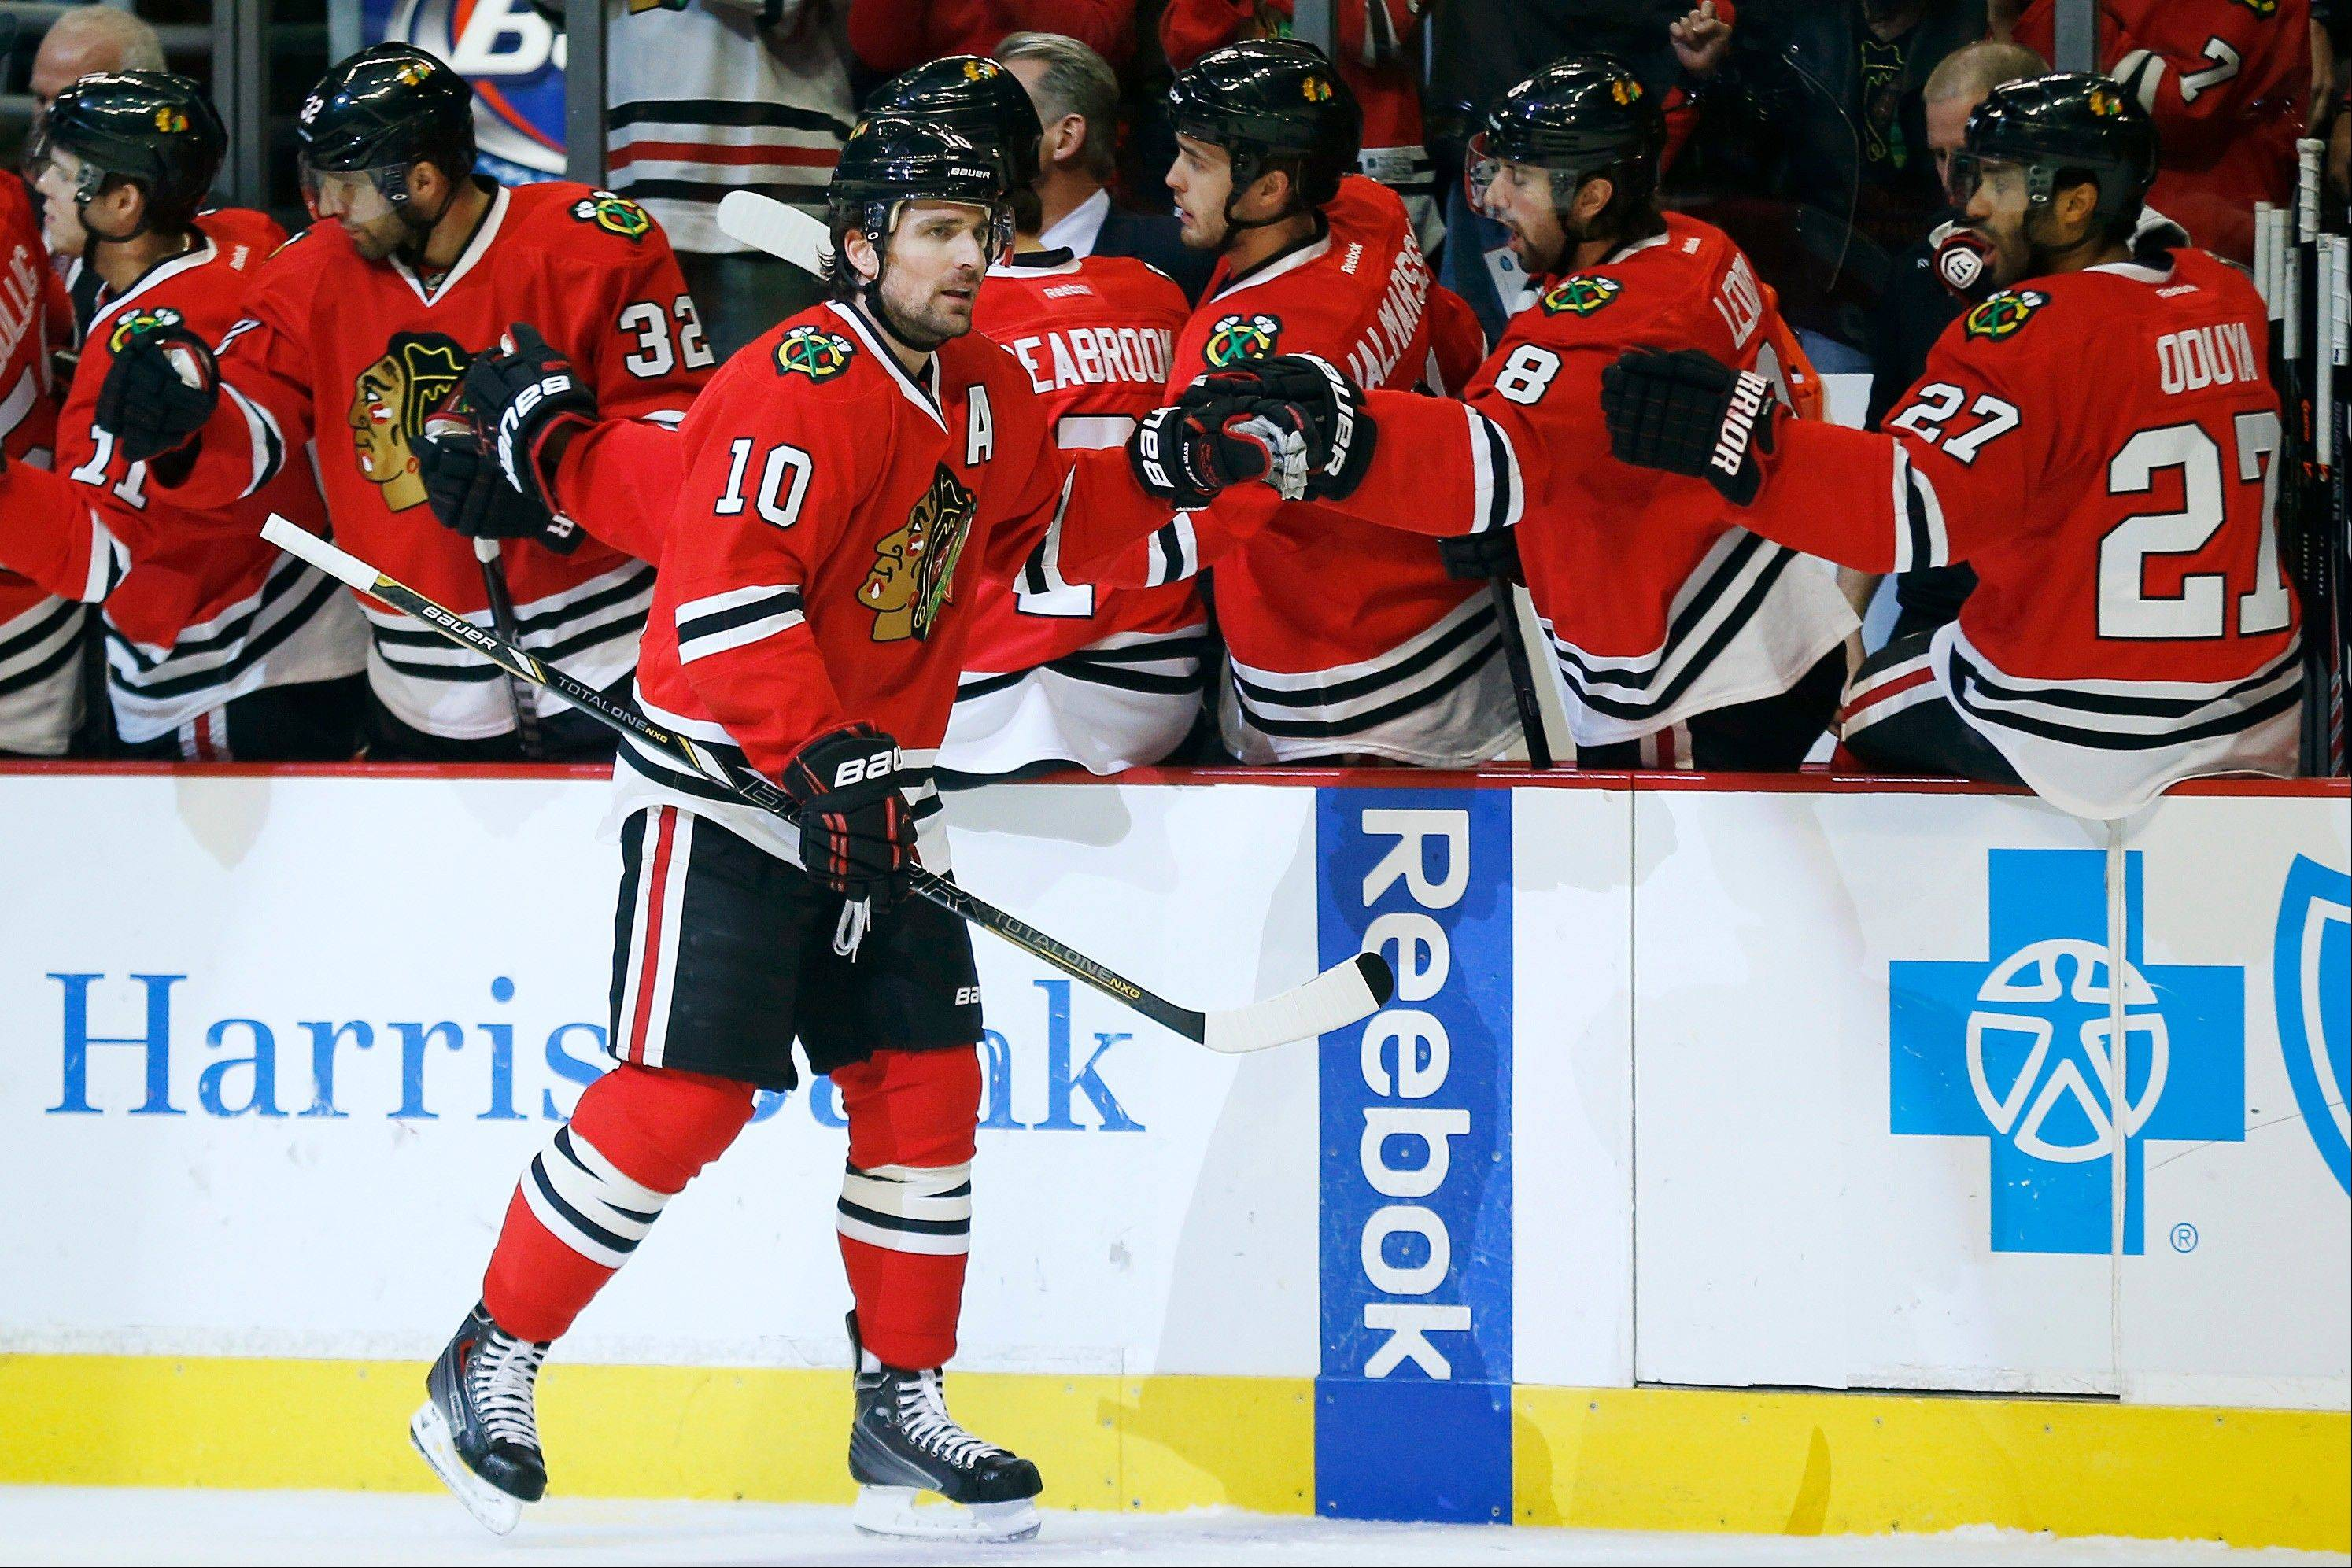 Patrick Sharp is putting together quite a season for the Hawks, with 25 goals and 24 assists in 49 games.